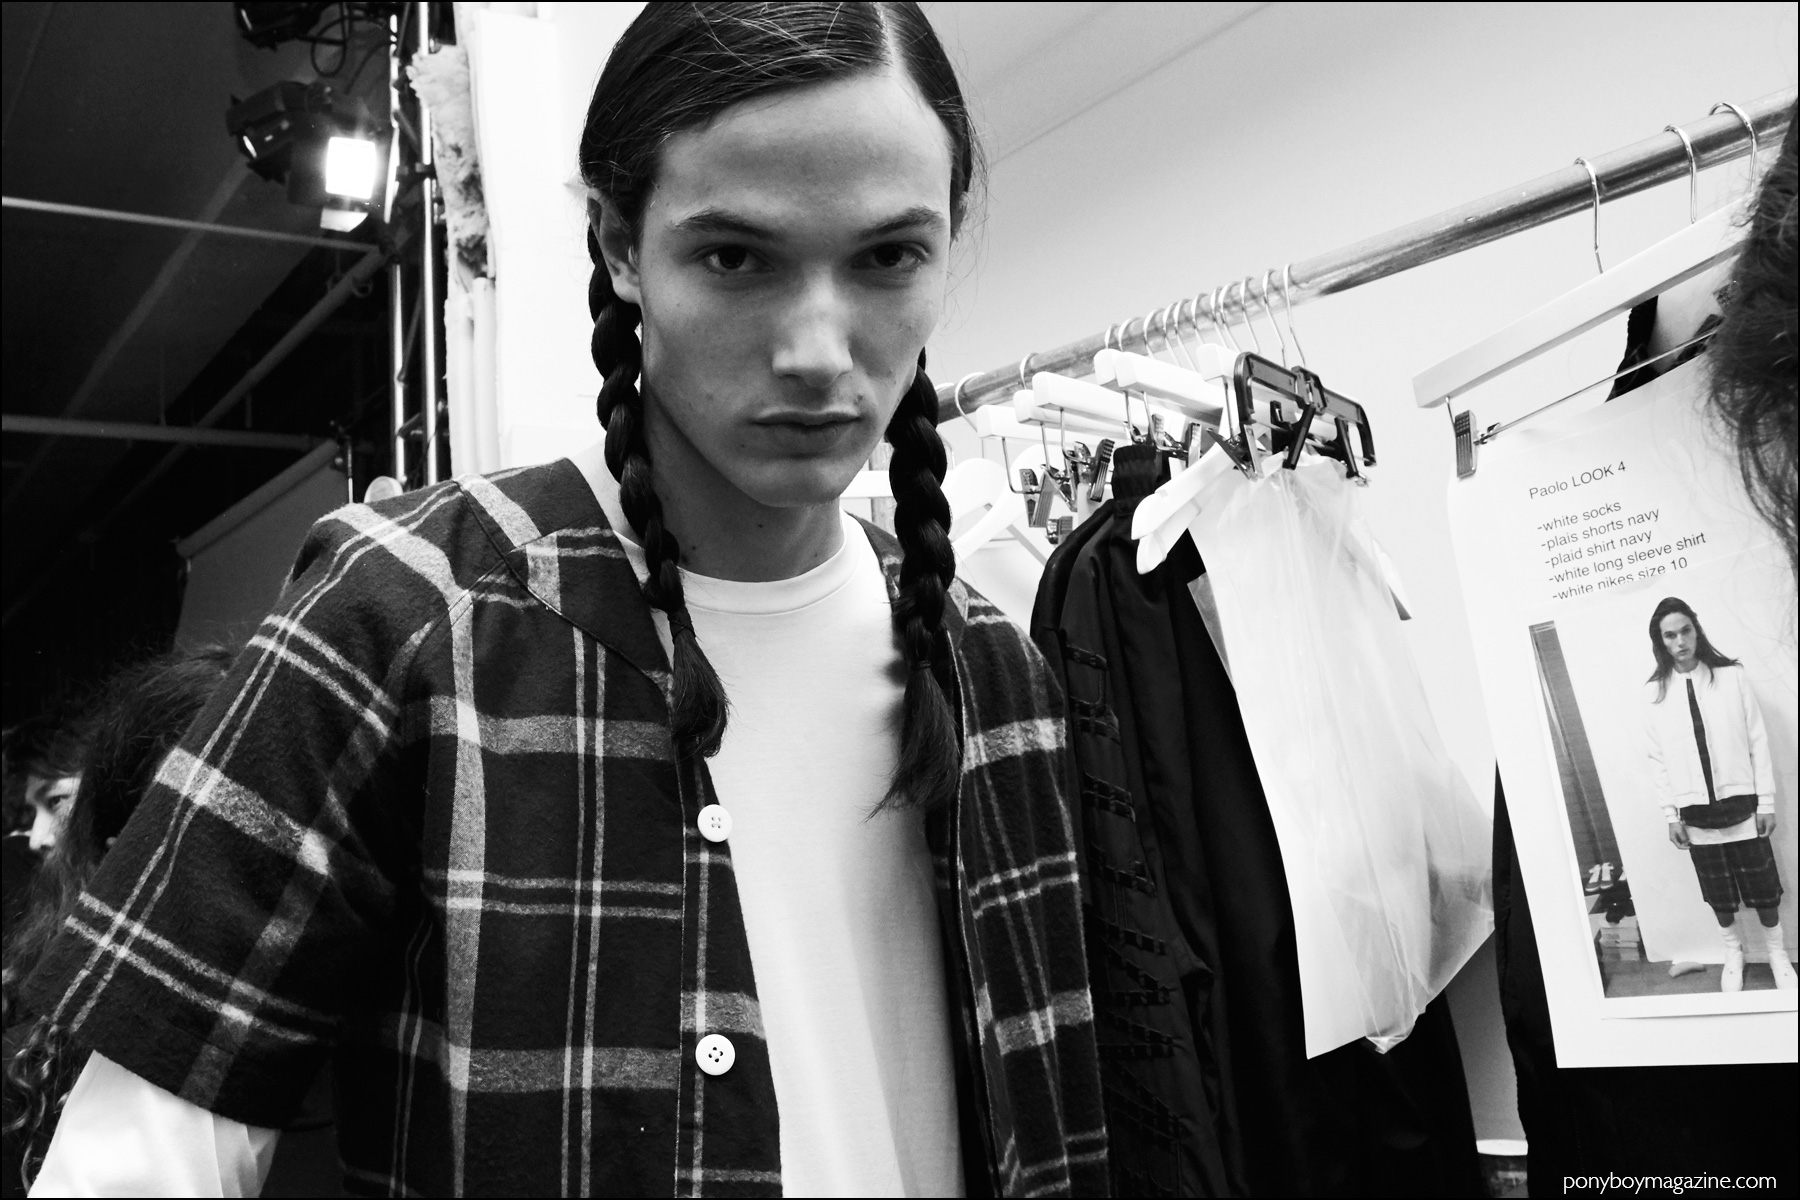 Male model Paolo snapped backstage at Rochambeau F/W16 menswear show. Photography by Alexander Thompson for Ponyboy magazine NY.